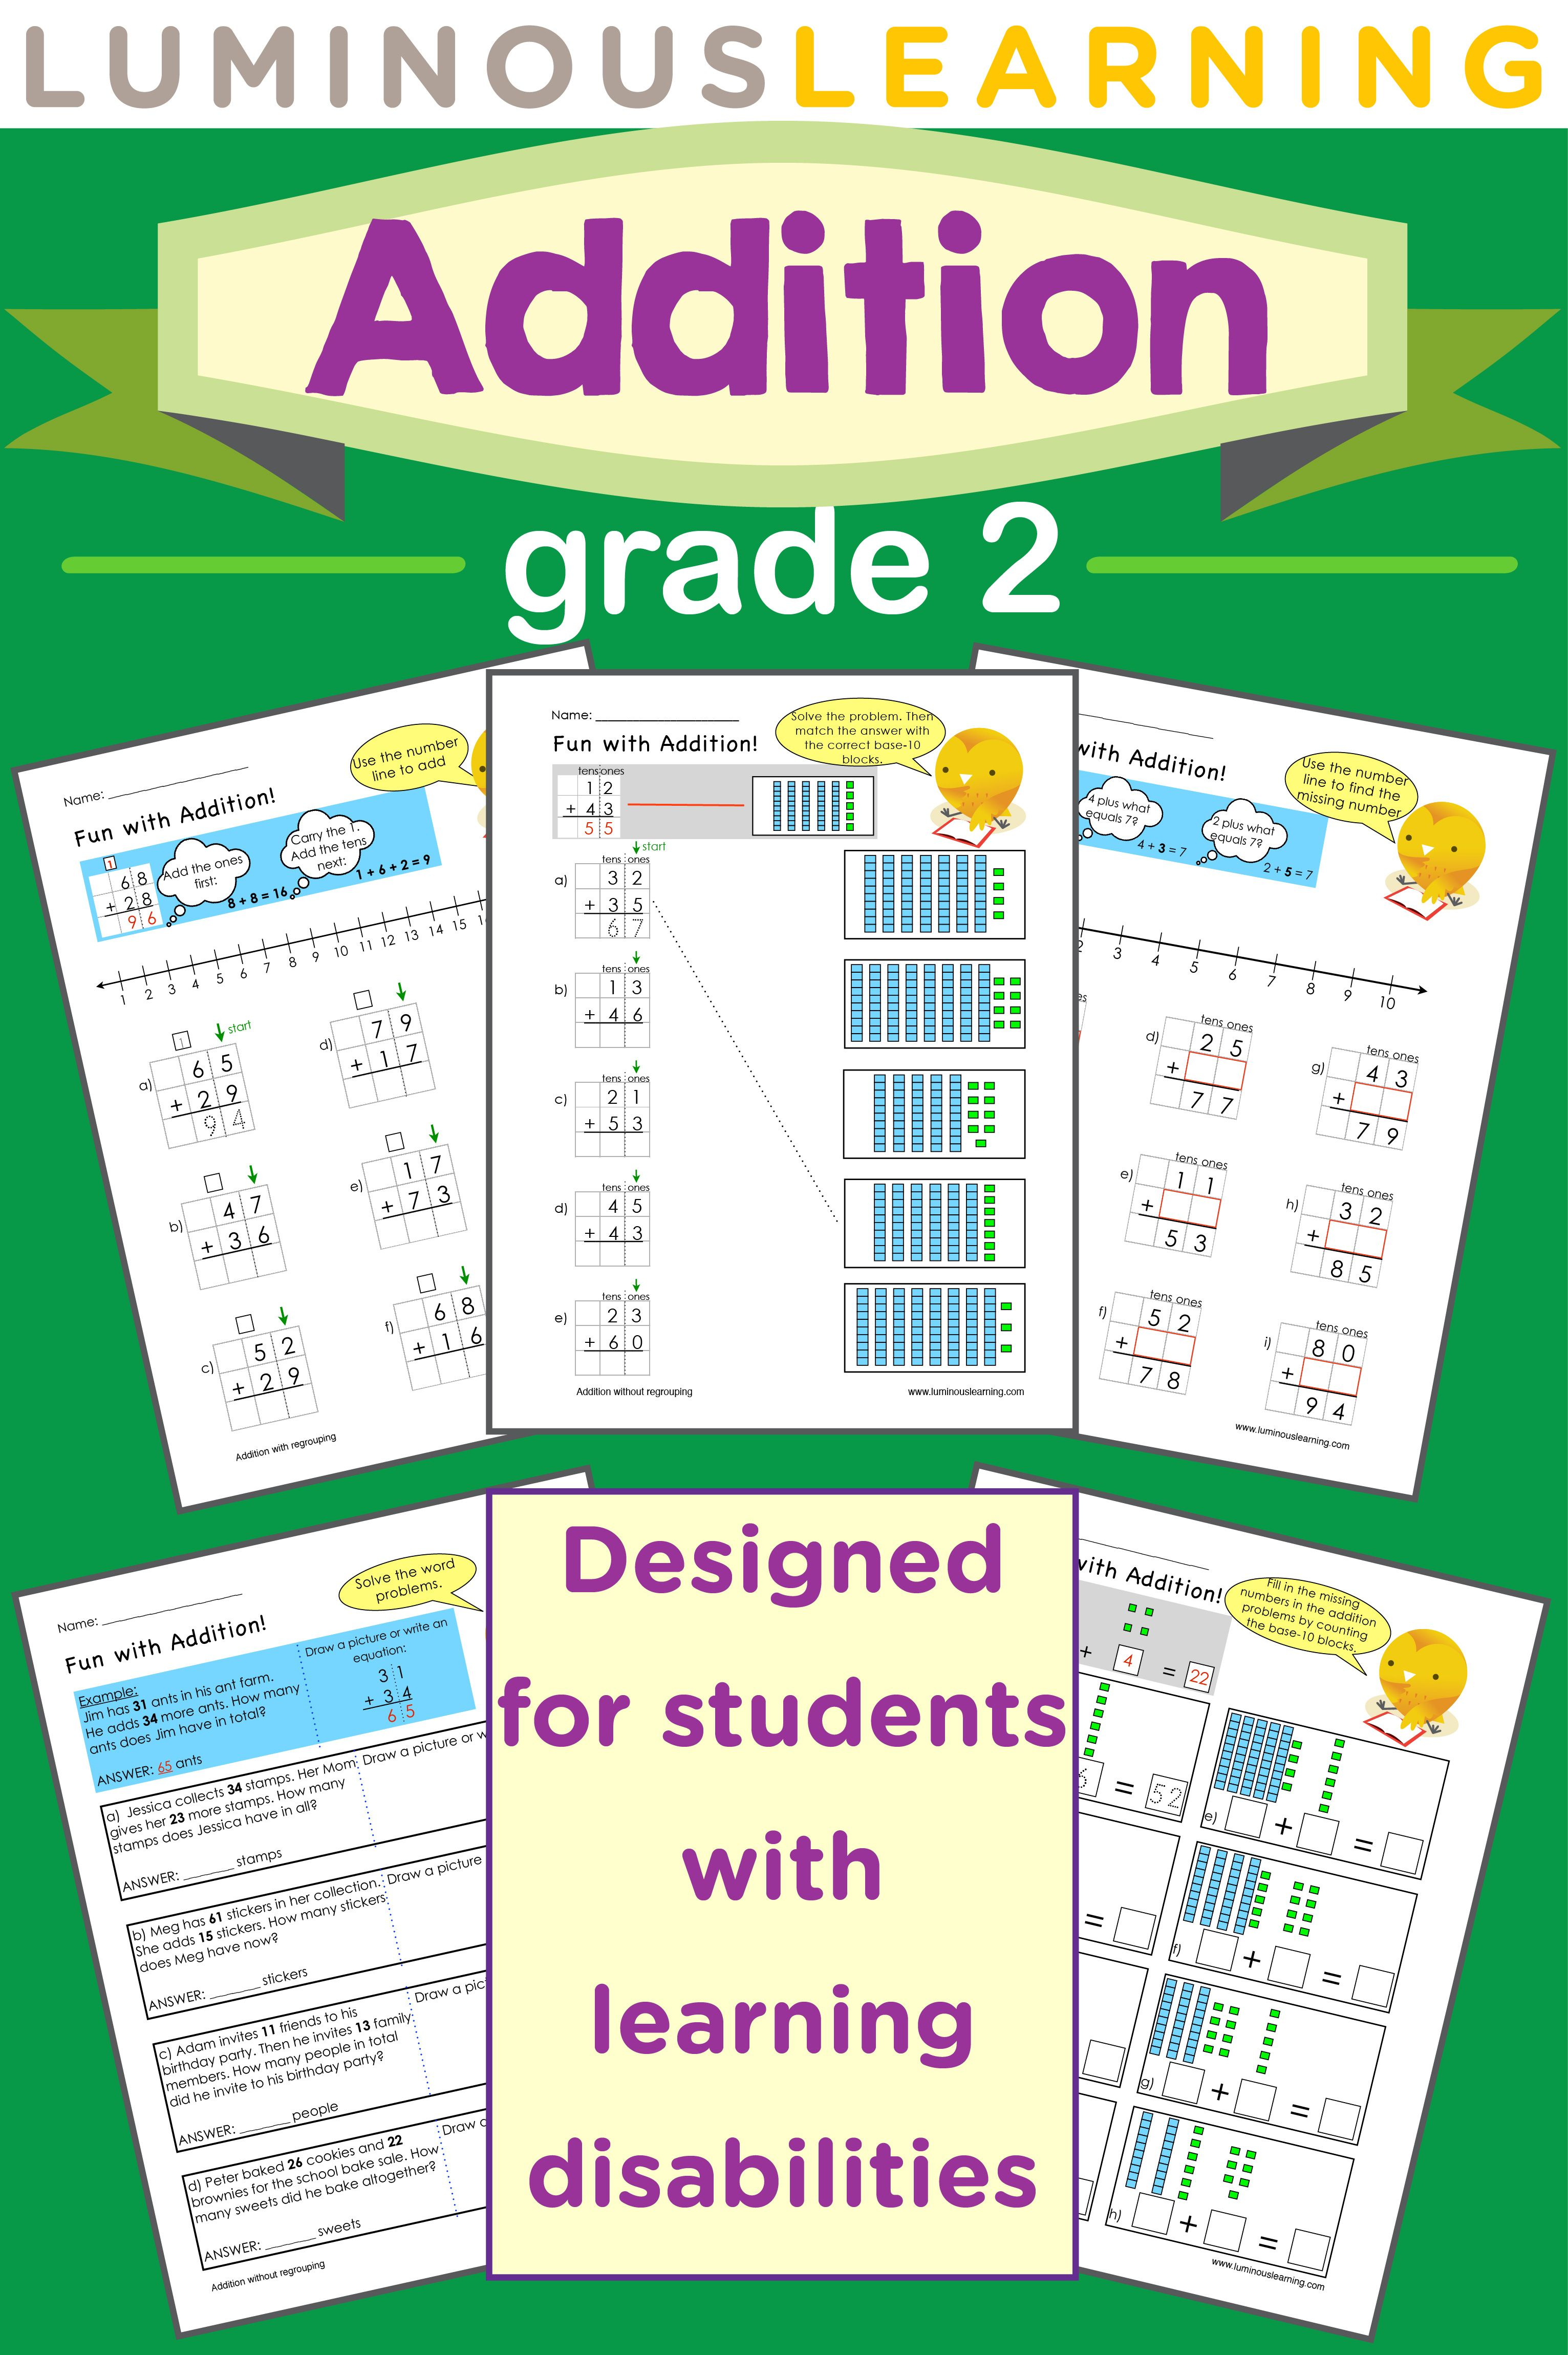 Luminous Learning Grade 2 Addition Workbook Helps